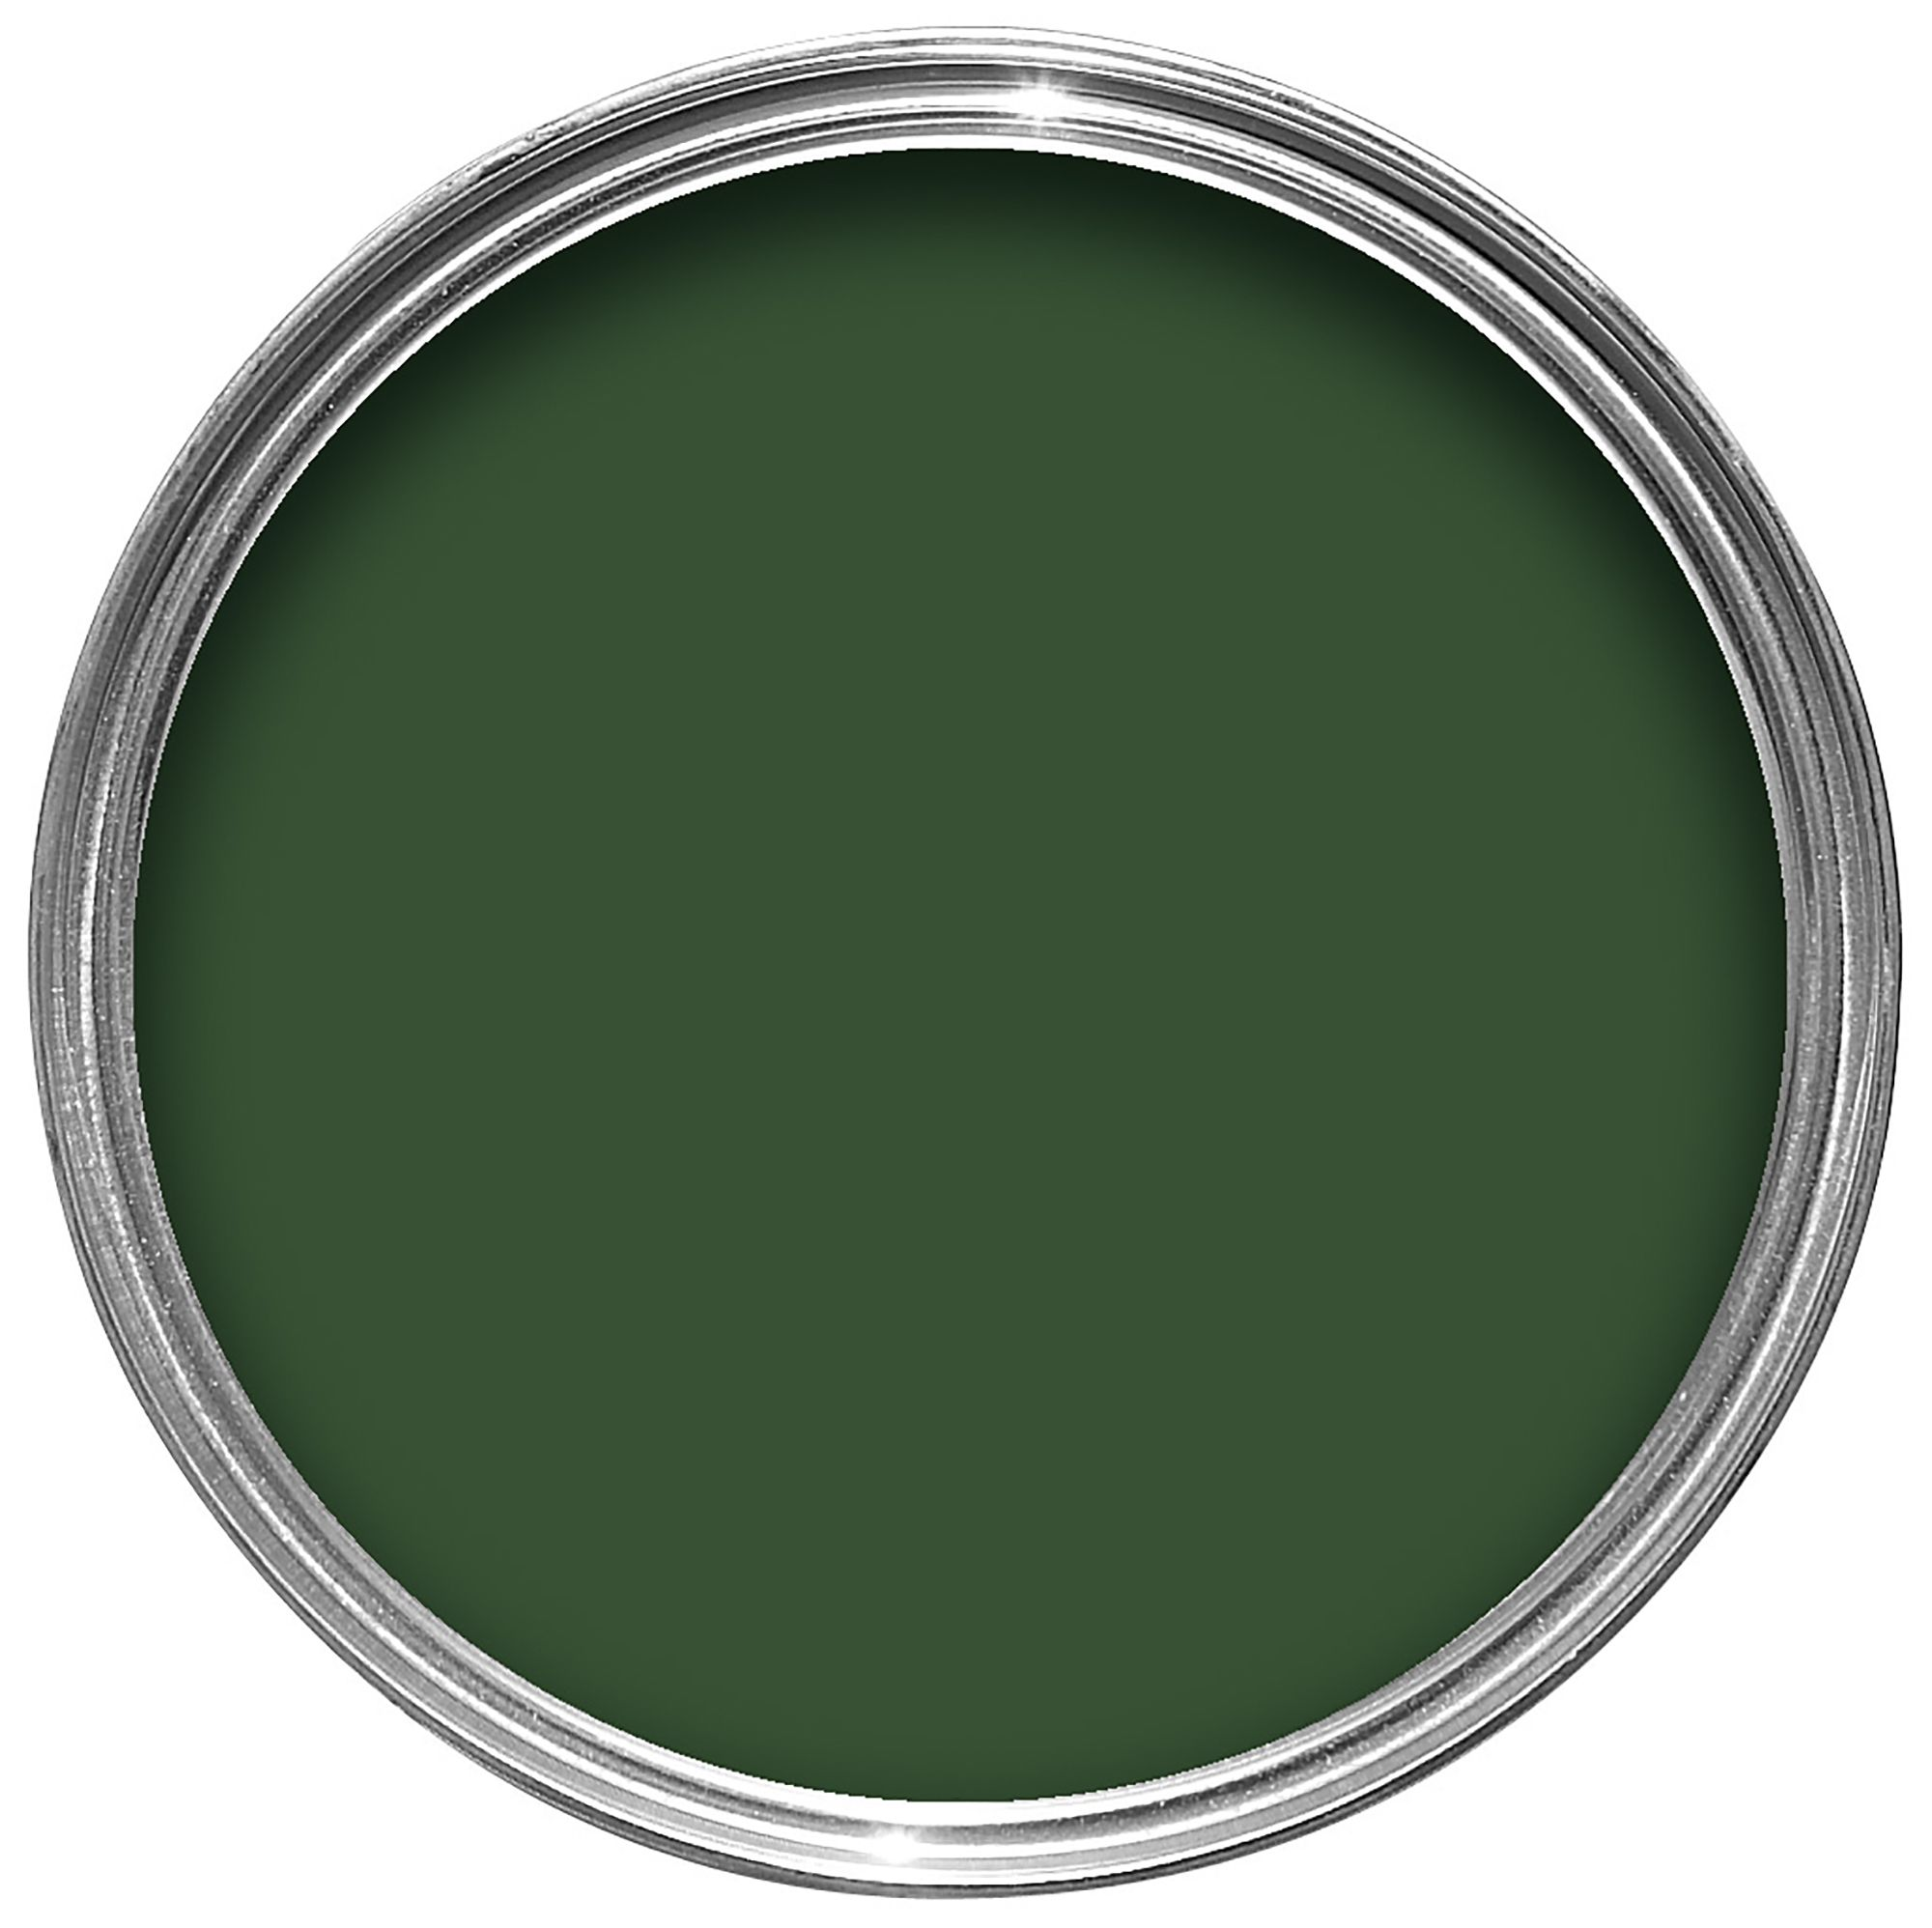 Colours exterior buckingham green gloss wood metal paint 750ml departments diy at b q - Dulux exterior gloss paint style ...